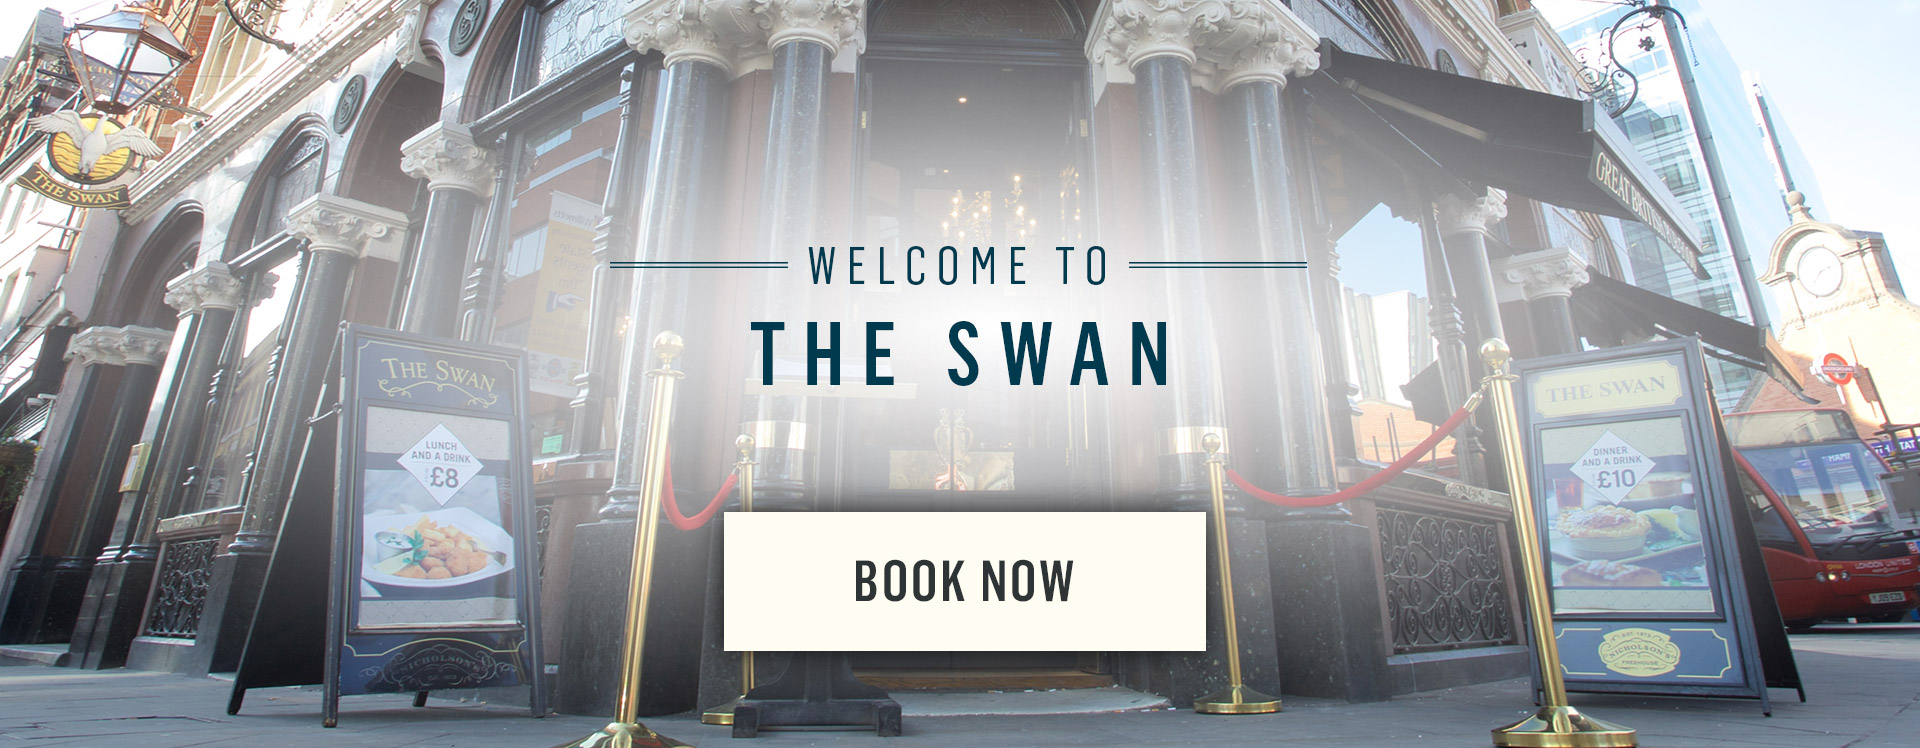 Welcome to The Swan - Book Now